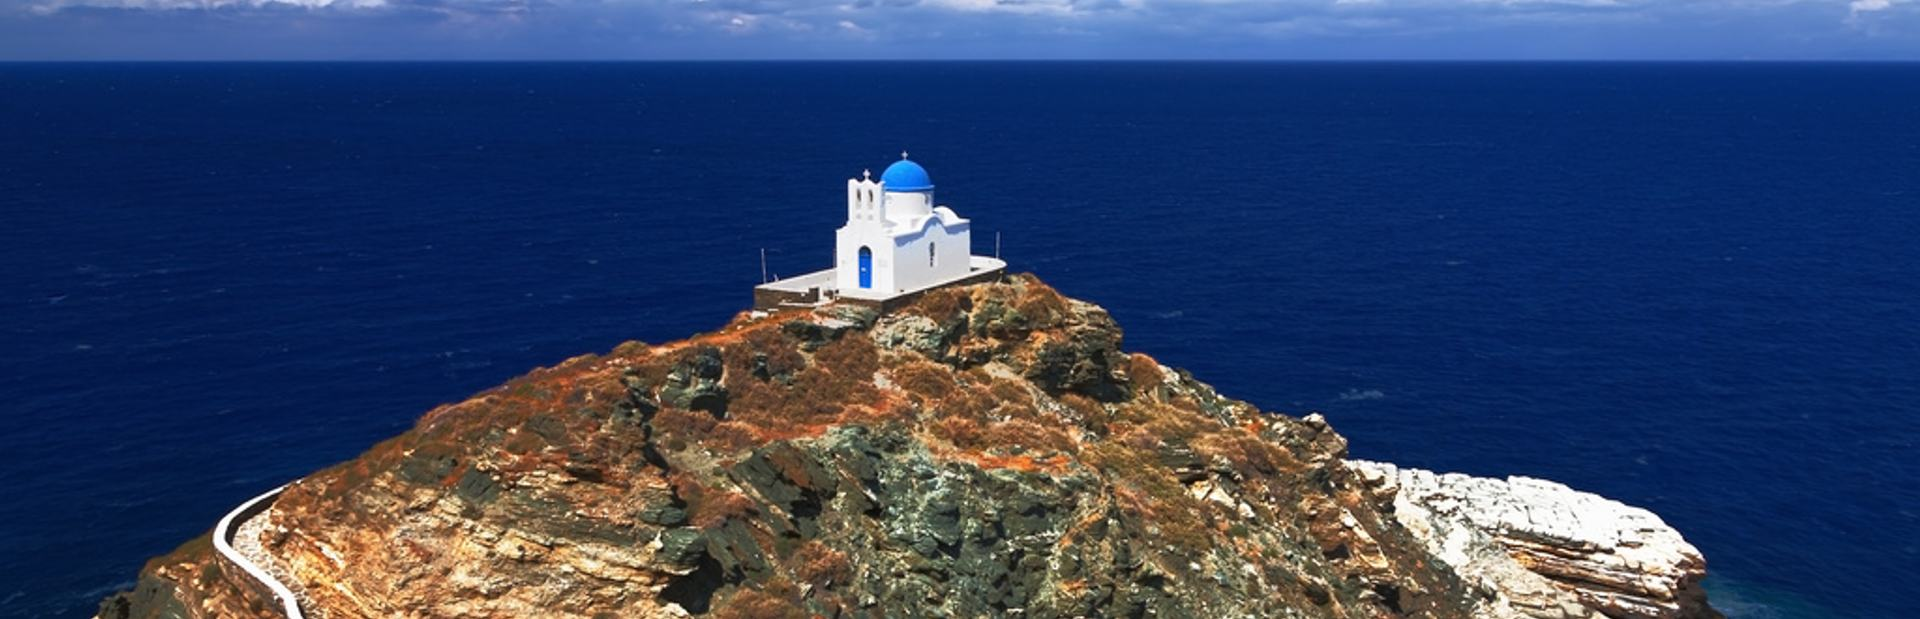 Discovering Sifnos: The Small Island behind Modern Greek Cuisine